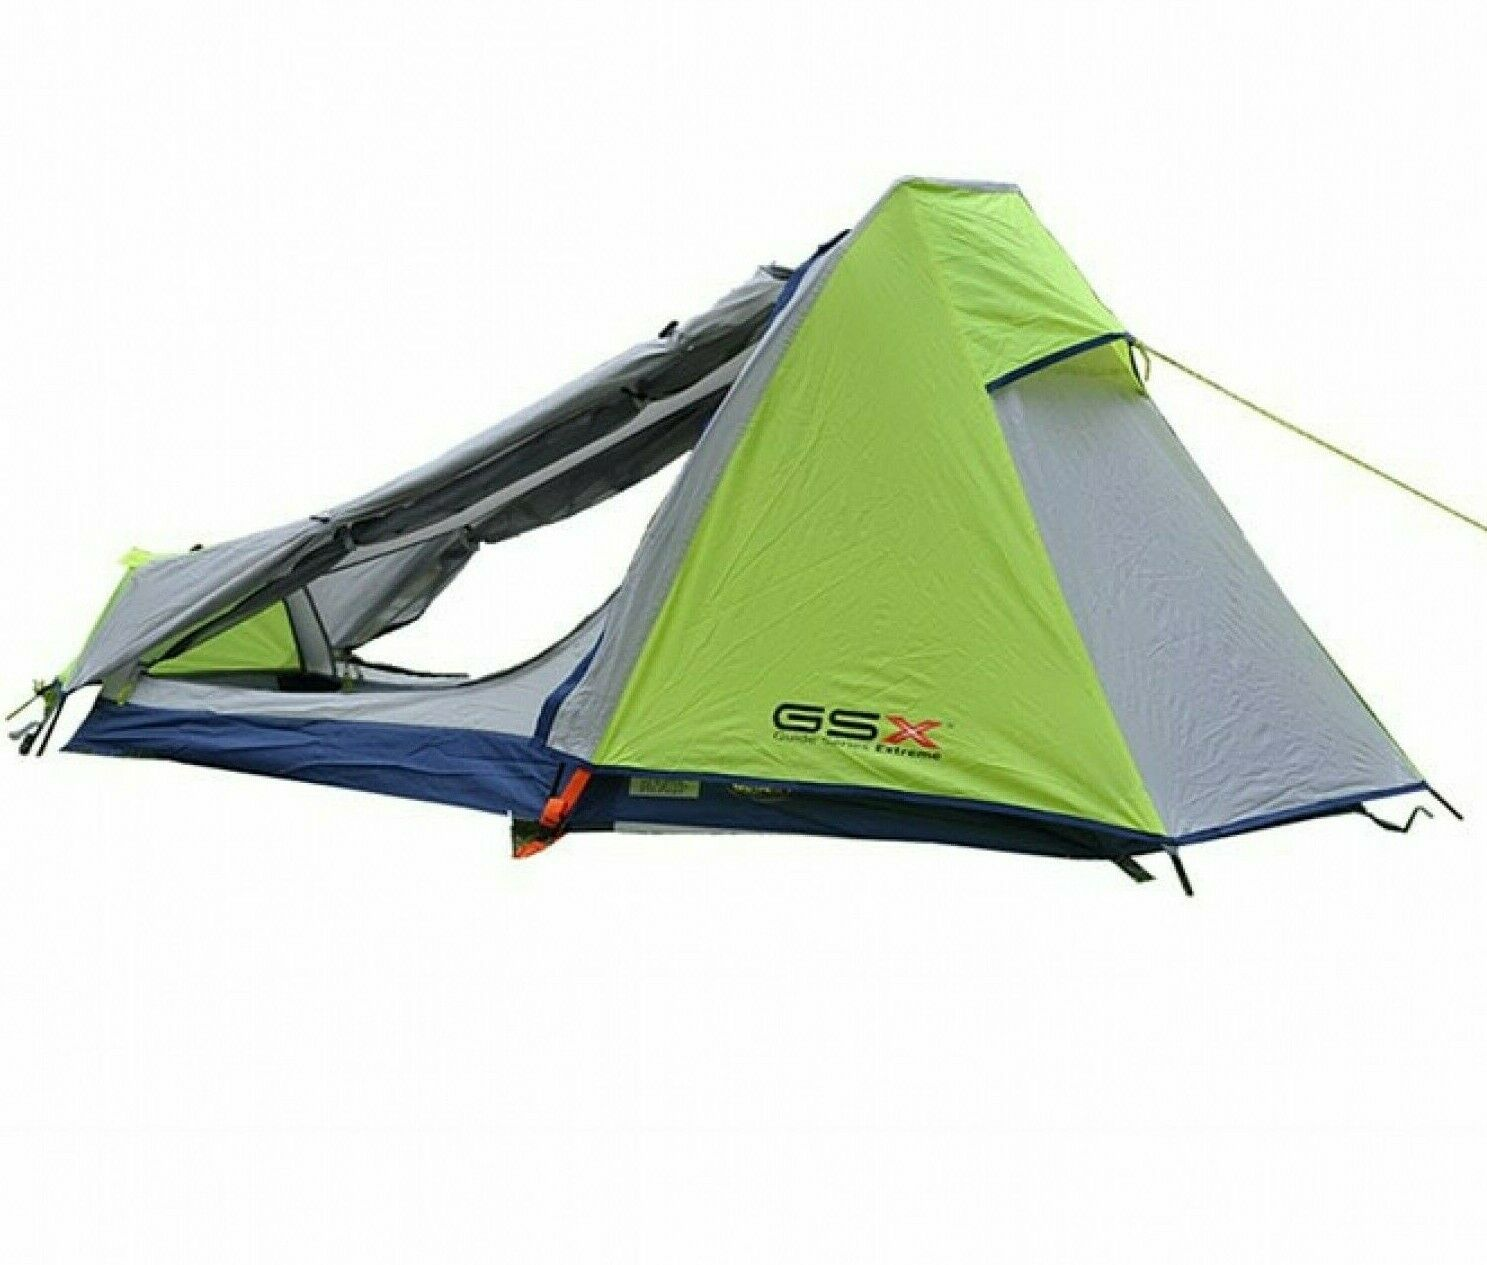 Camping Hiking Tent Trekking Travel Person Light Weight 2 1 Ultra Survival Army